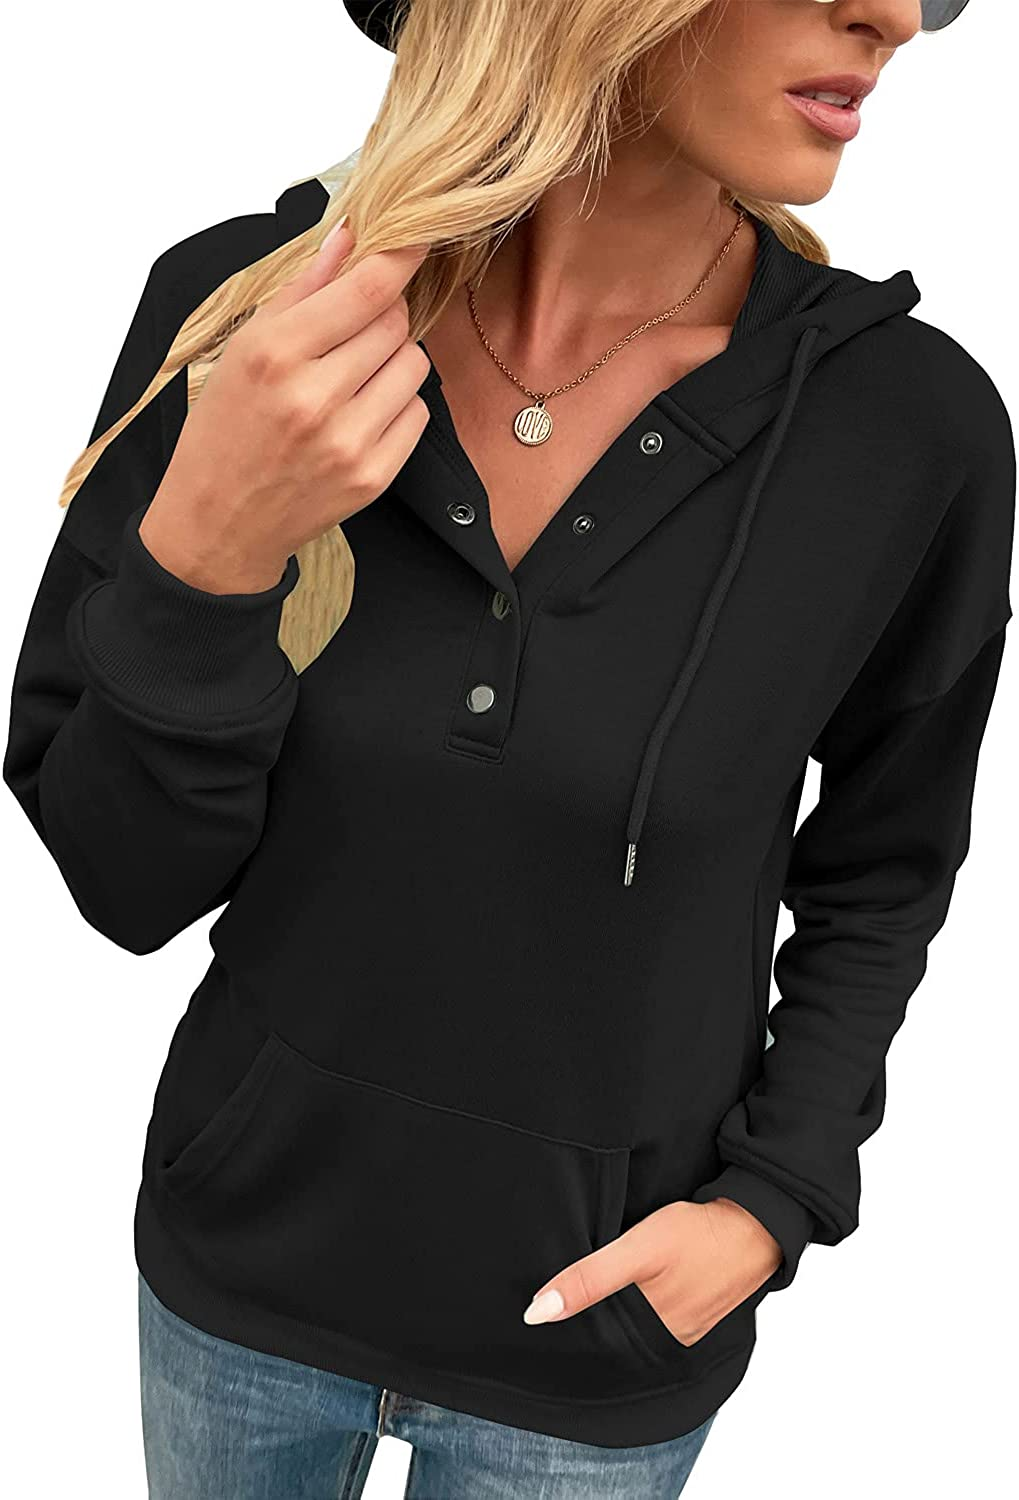 LOLONG Womens Long Sleeve Lapel Zipper Sweatshirt Casual Stand Collar Pullover with Pockets